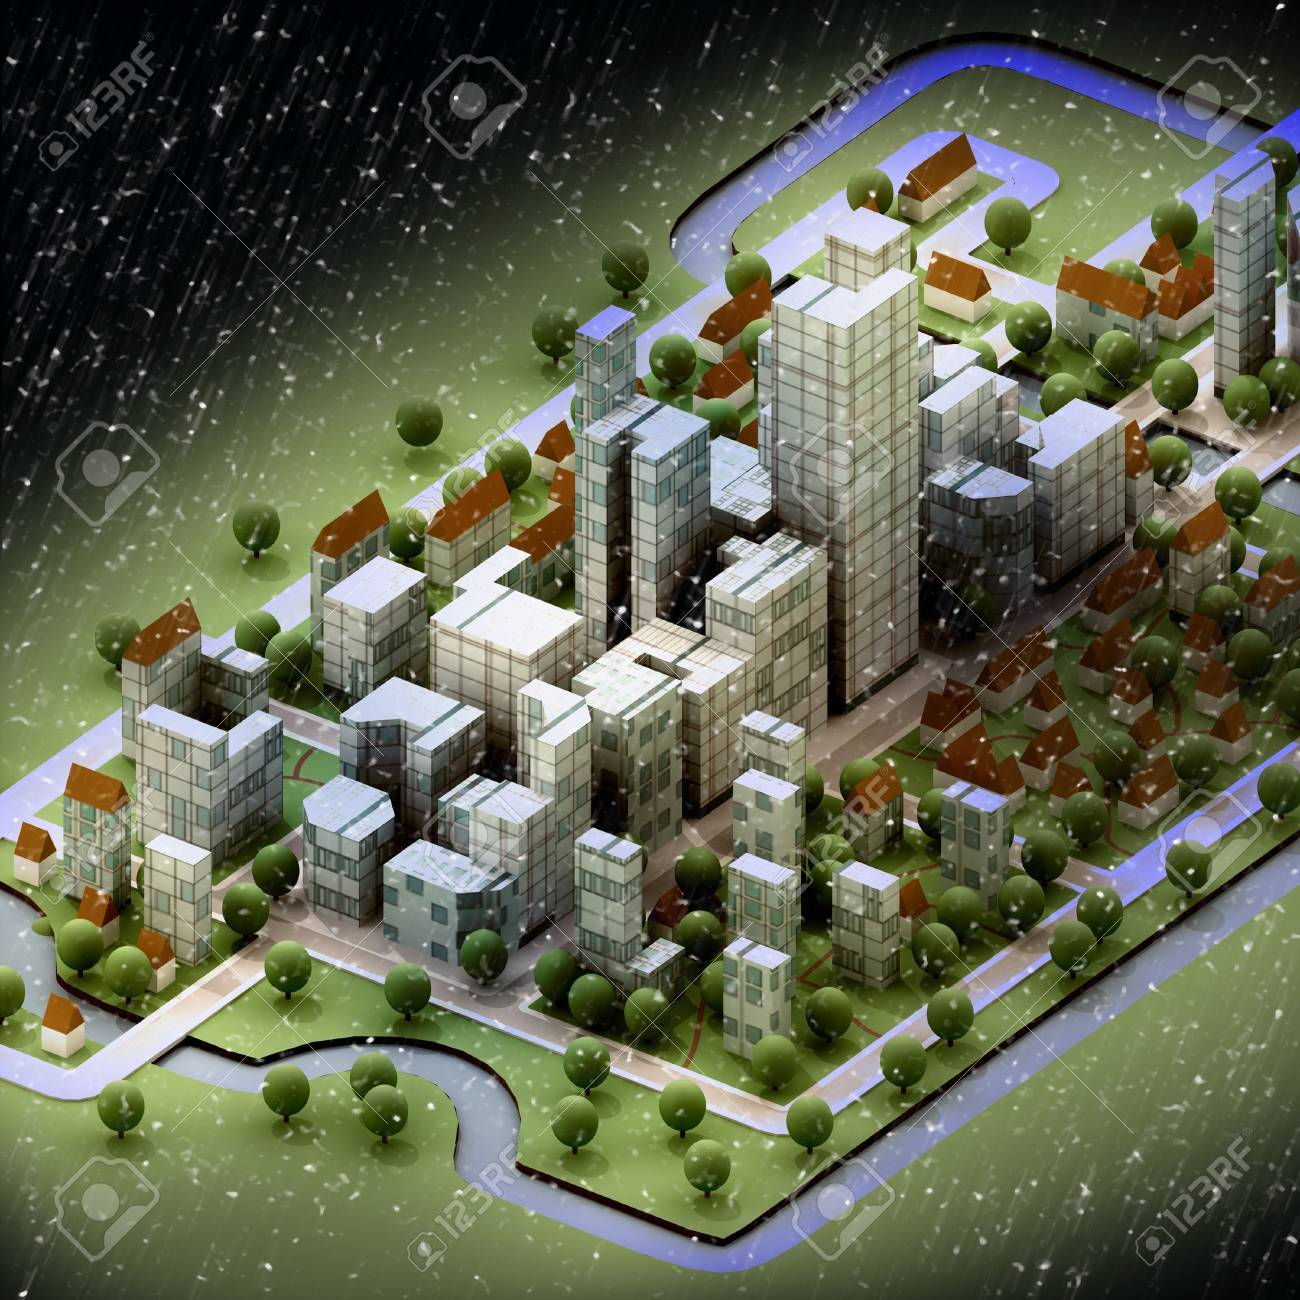 landscape of new sustainable city wintertime concept development illustration perspective render illustration Stock Illustration - 16157374